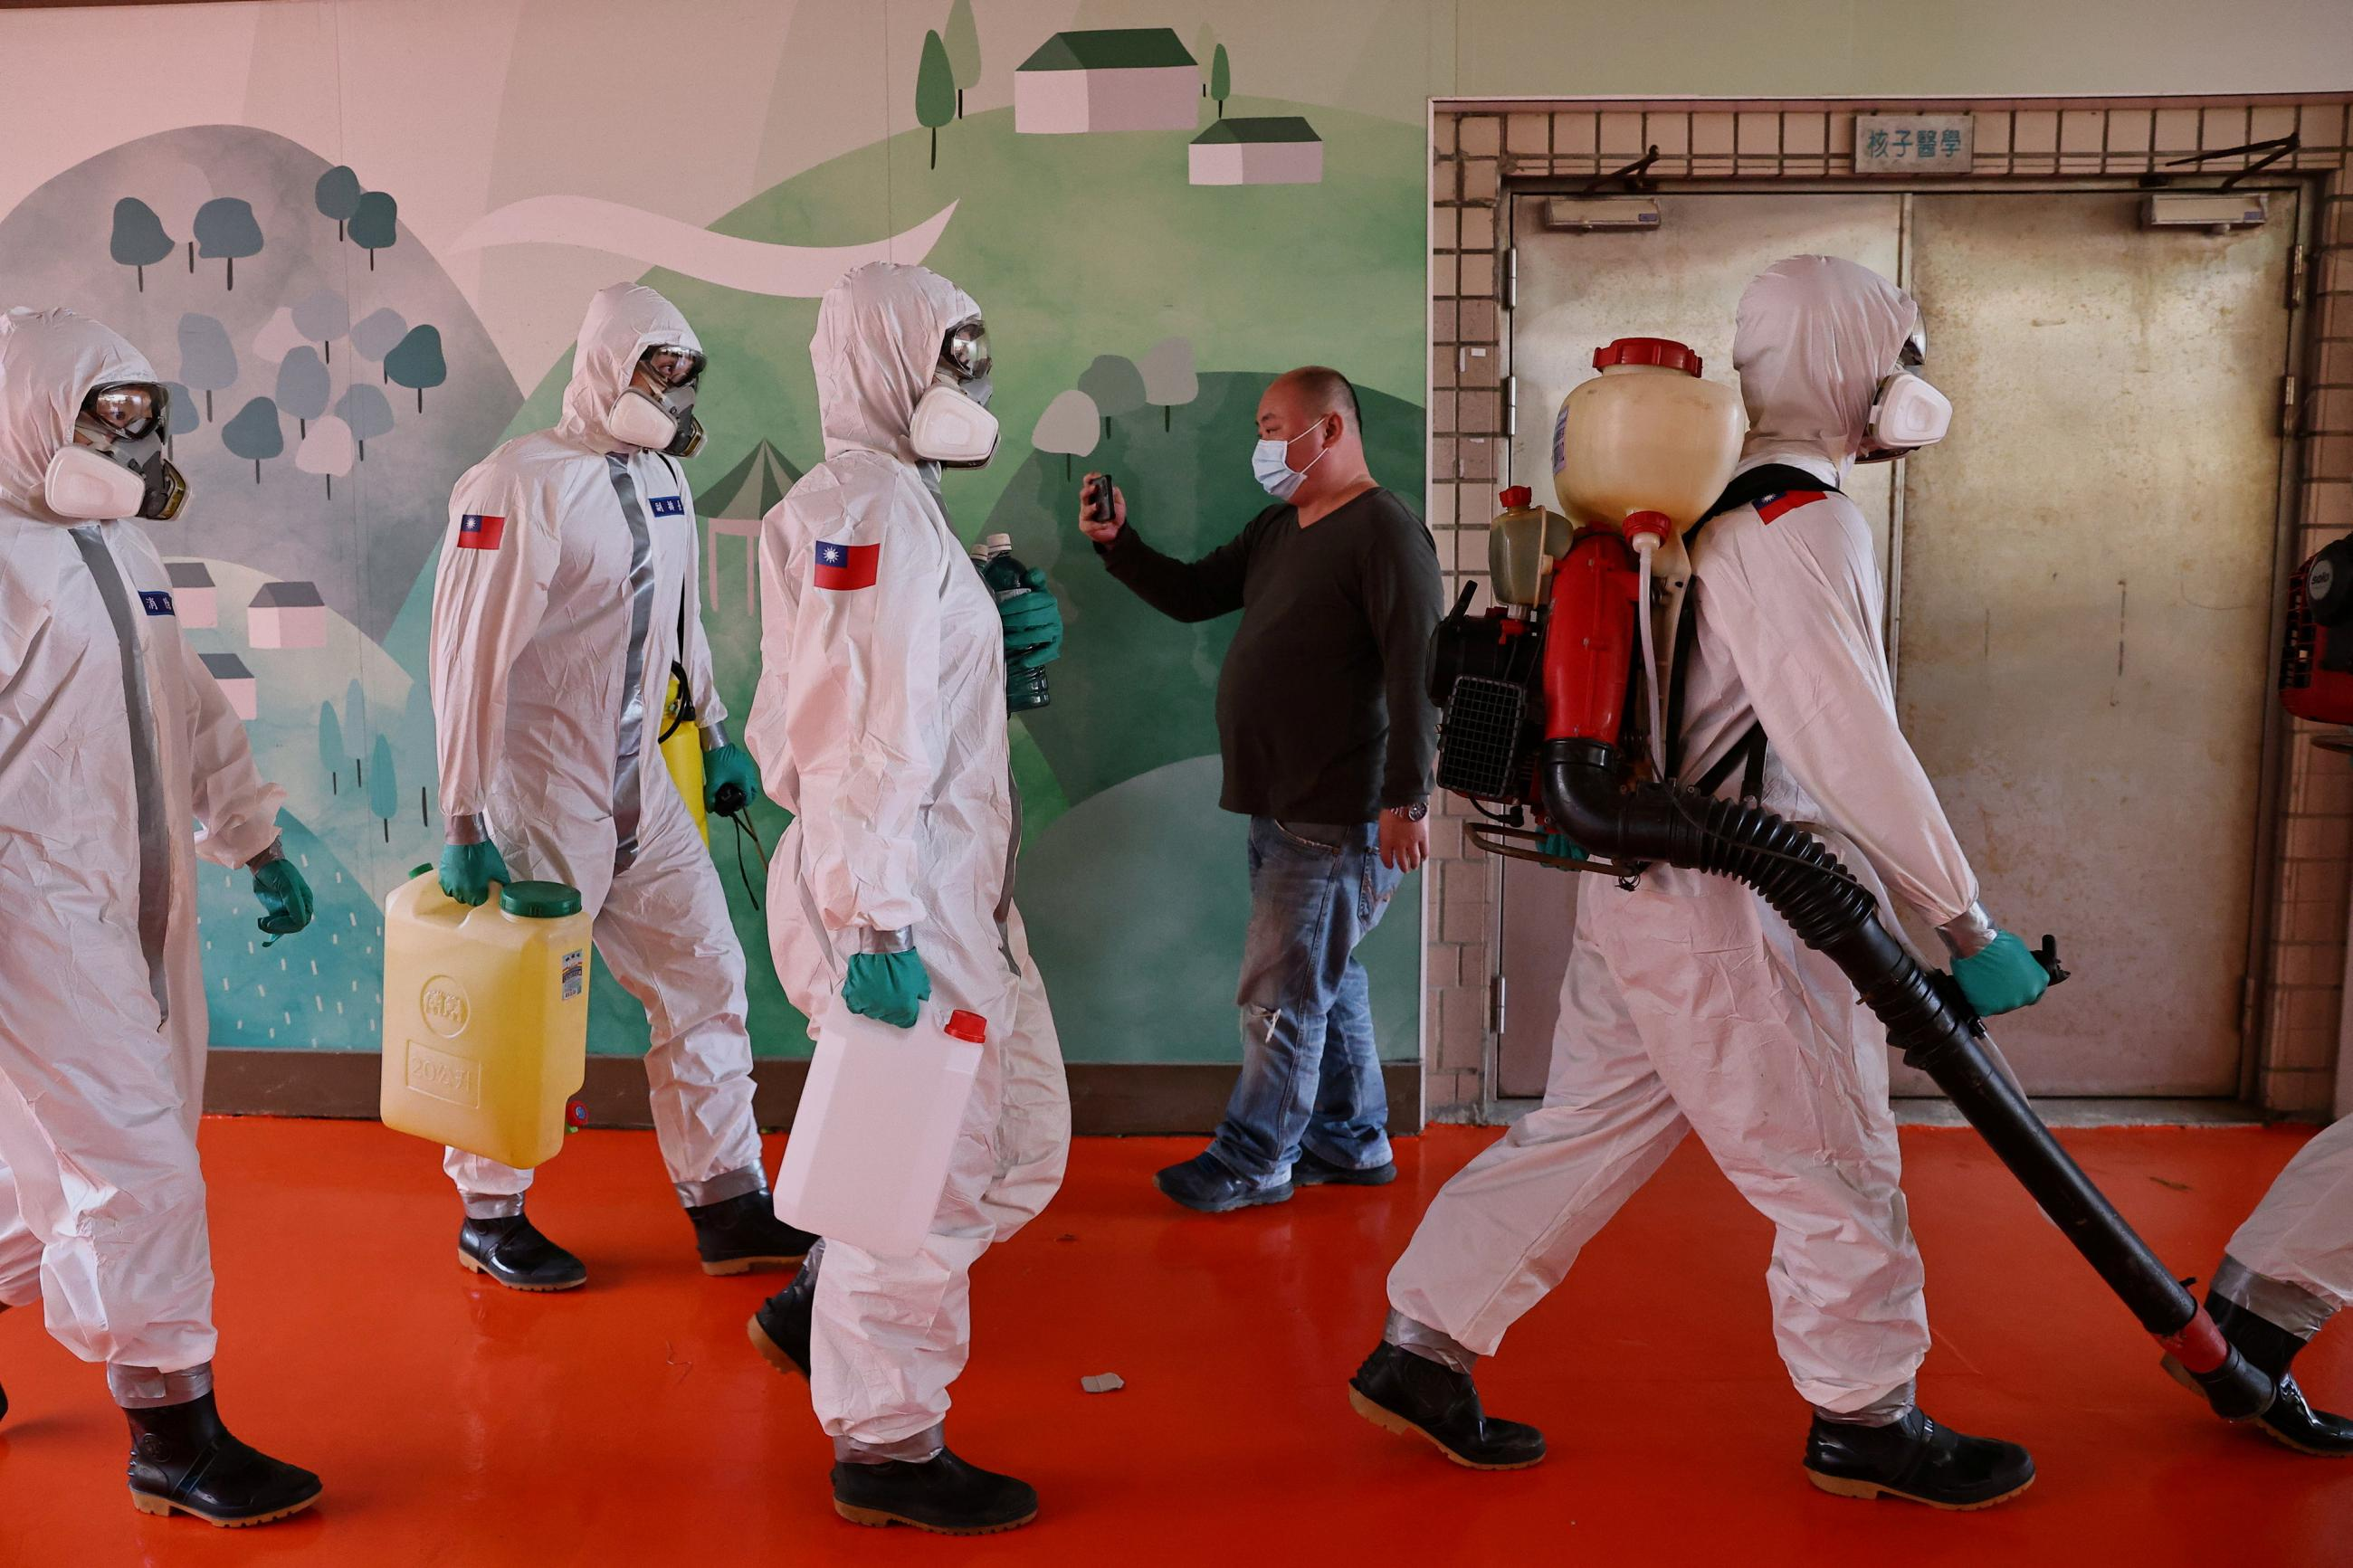 Soldiers prepare to spray disinfectant at the Taoyuan General Hospital, where a cluster of coronavirus disease (COVID-19) infections was detected, in Taoyuan, Taiwan, January 19, 2021.